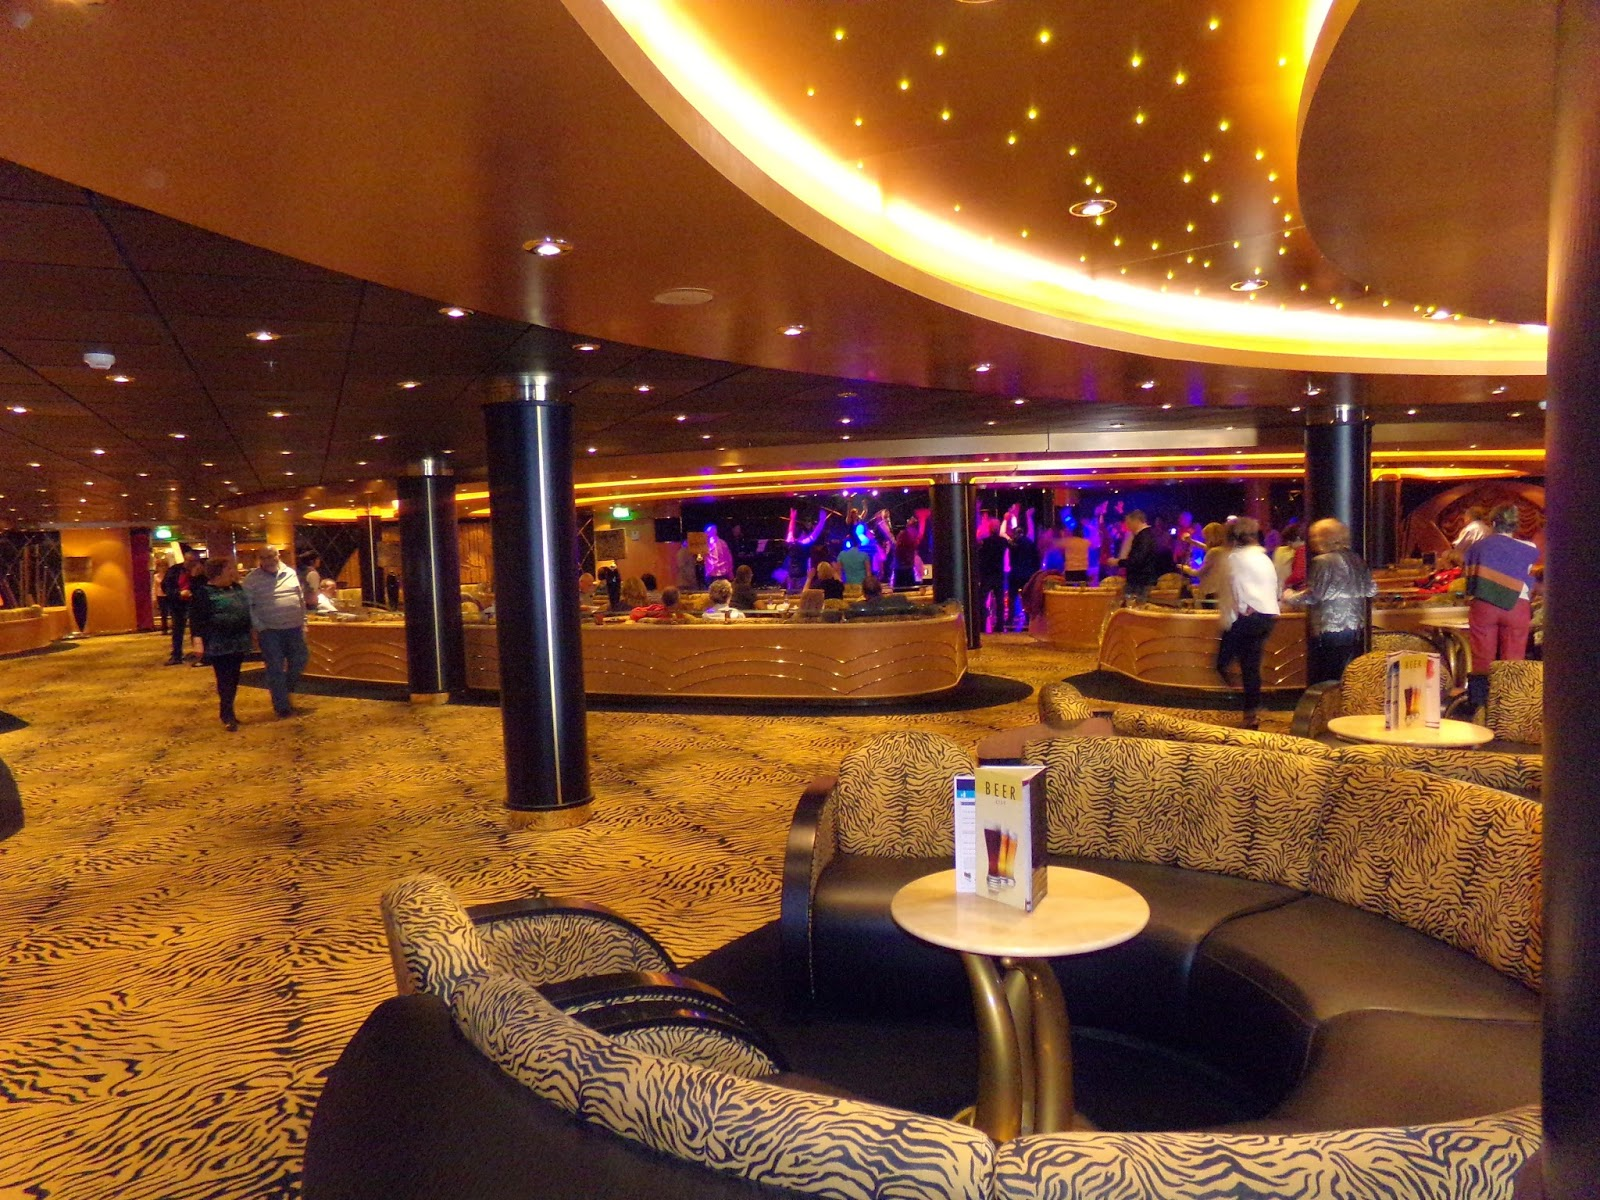 MSC Magnifica Review Flavia Gray GoCruise